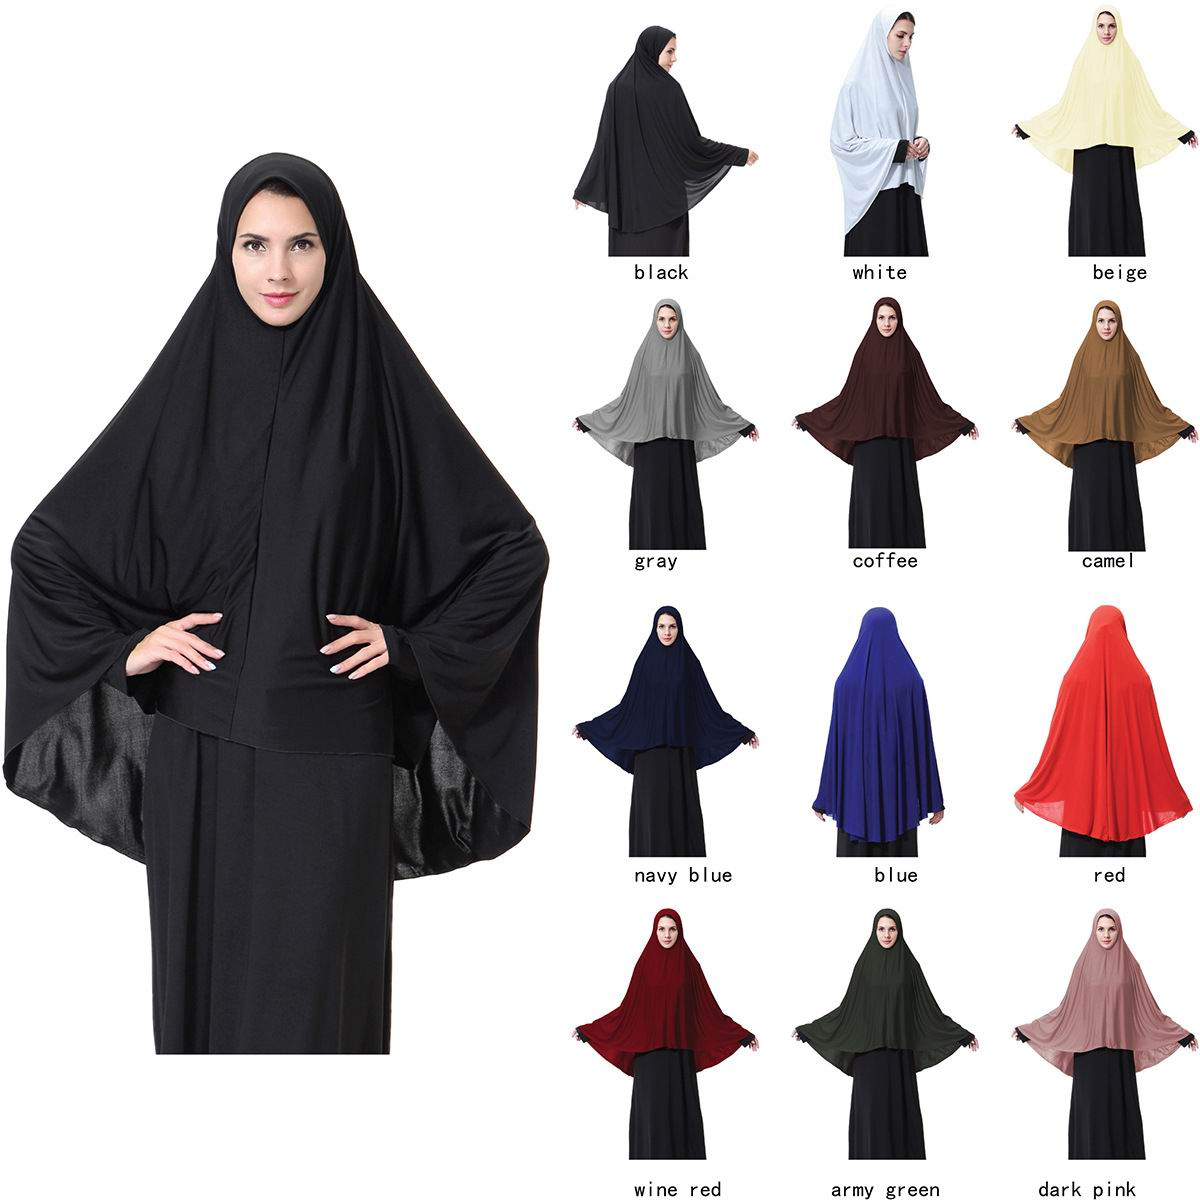 018 solid plain stretchy lycra Prayer abaya